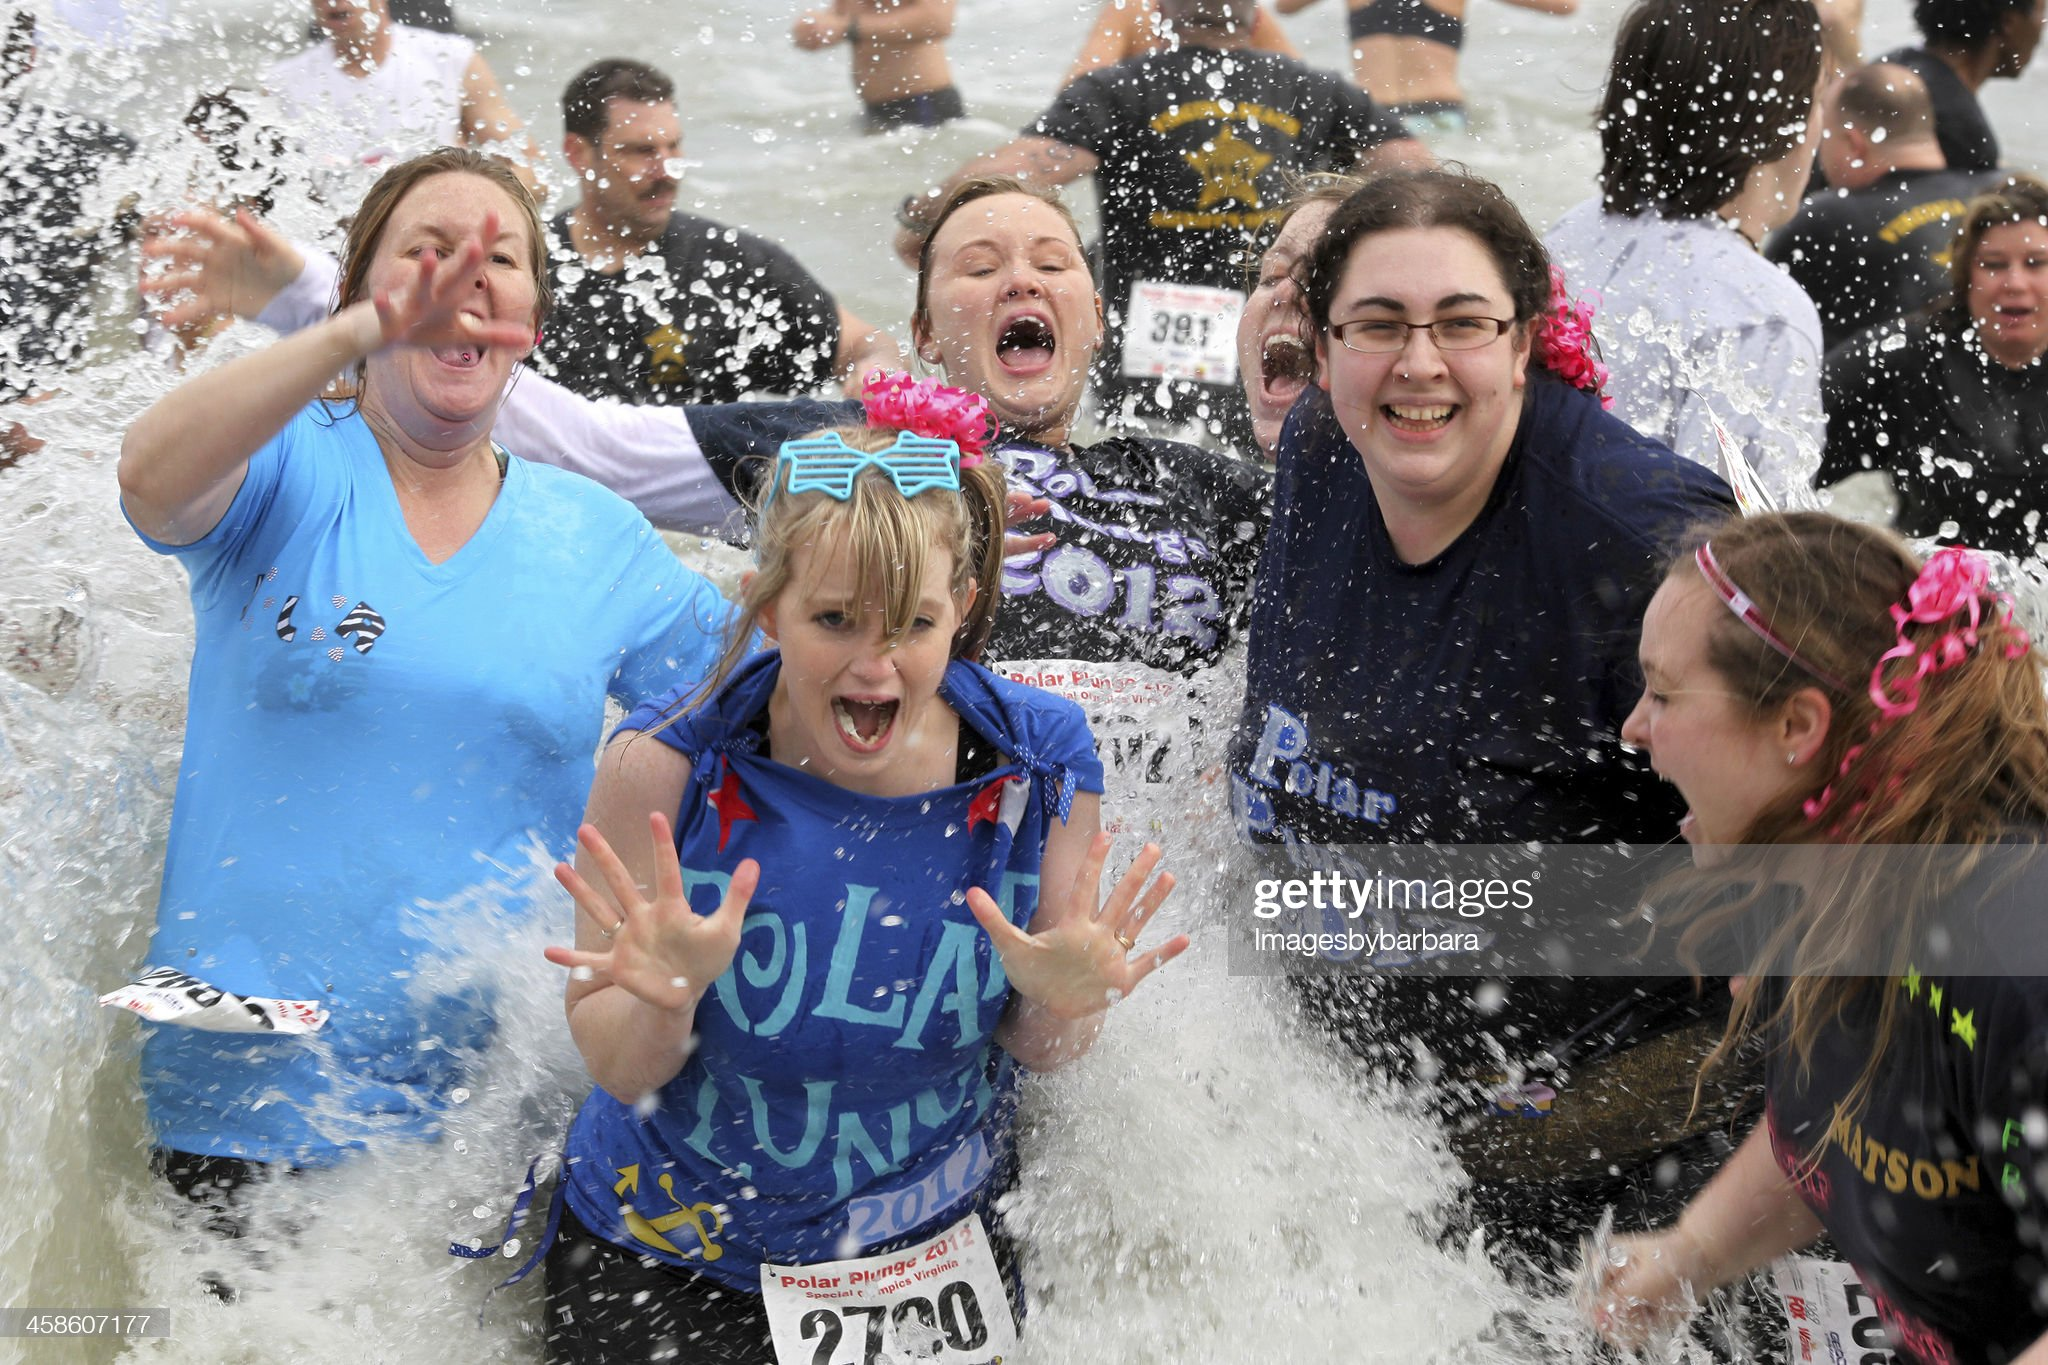 Polar Plunge Women in icy water